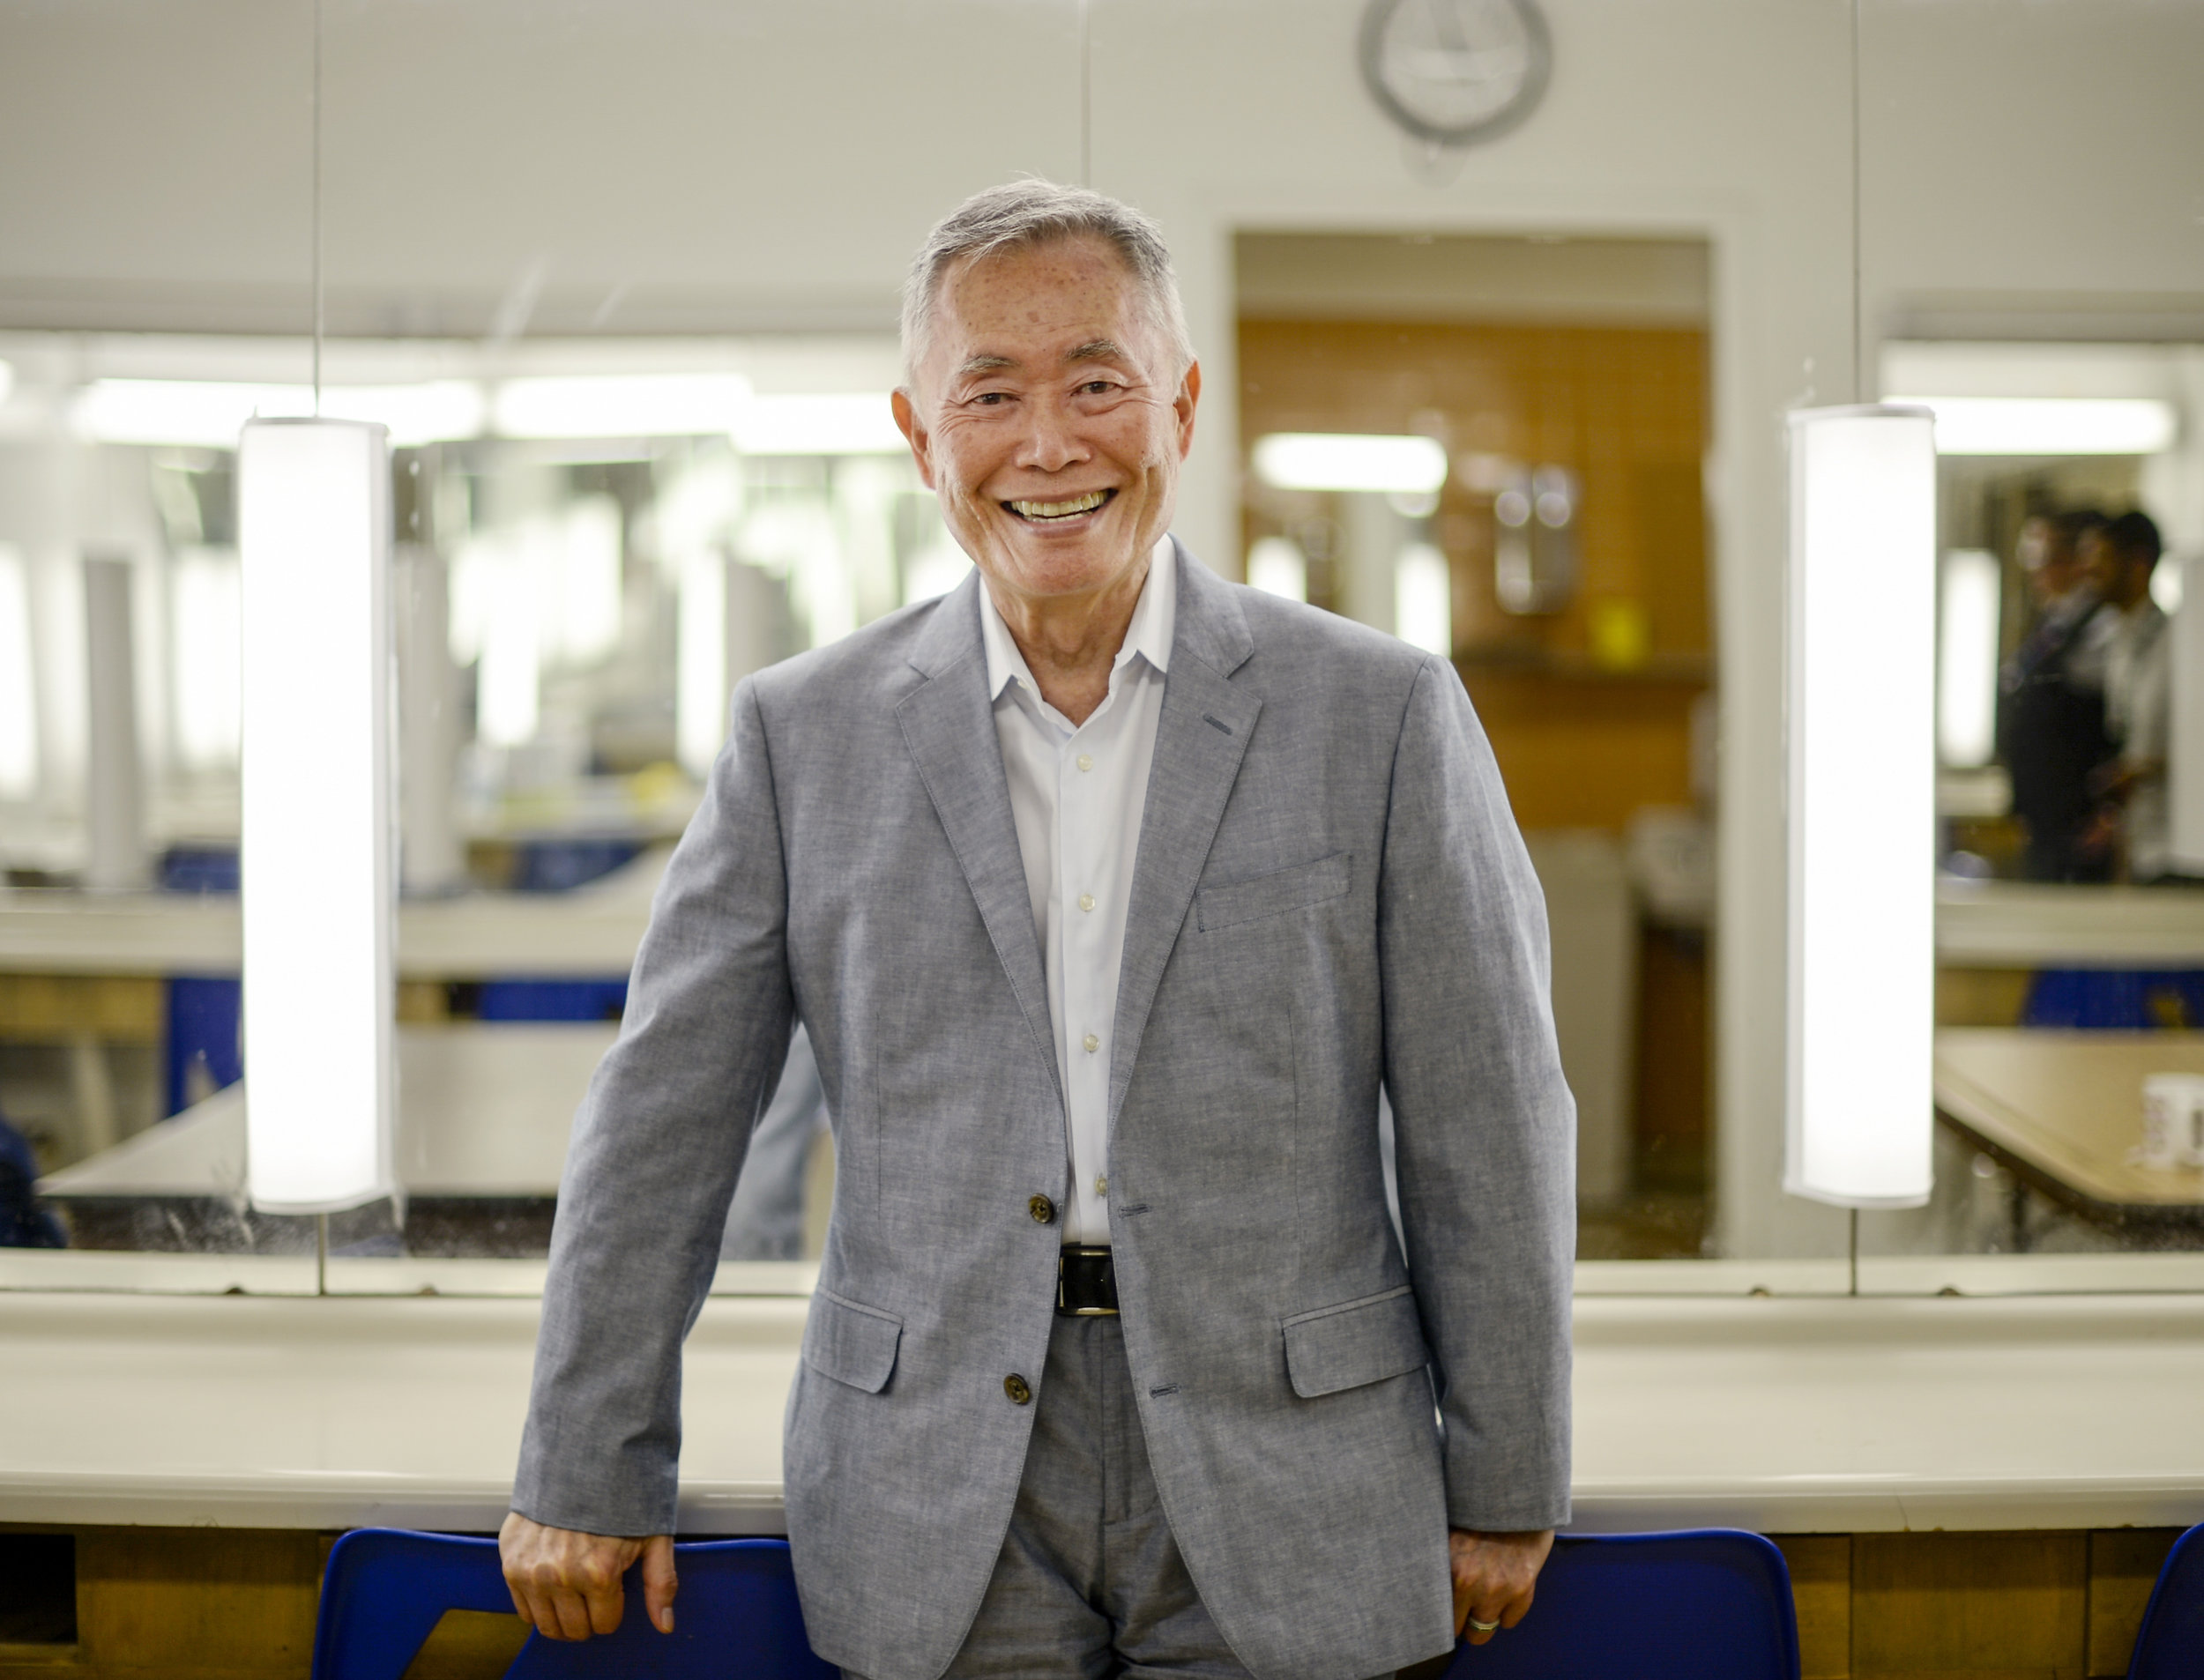 George Takei, actor and activist, poses for a photo before speaking at Ryerson Theatre in Toronto, Ont. on June 26, 2016.